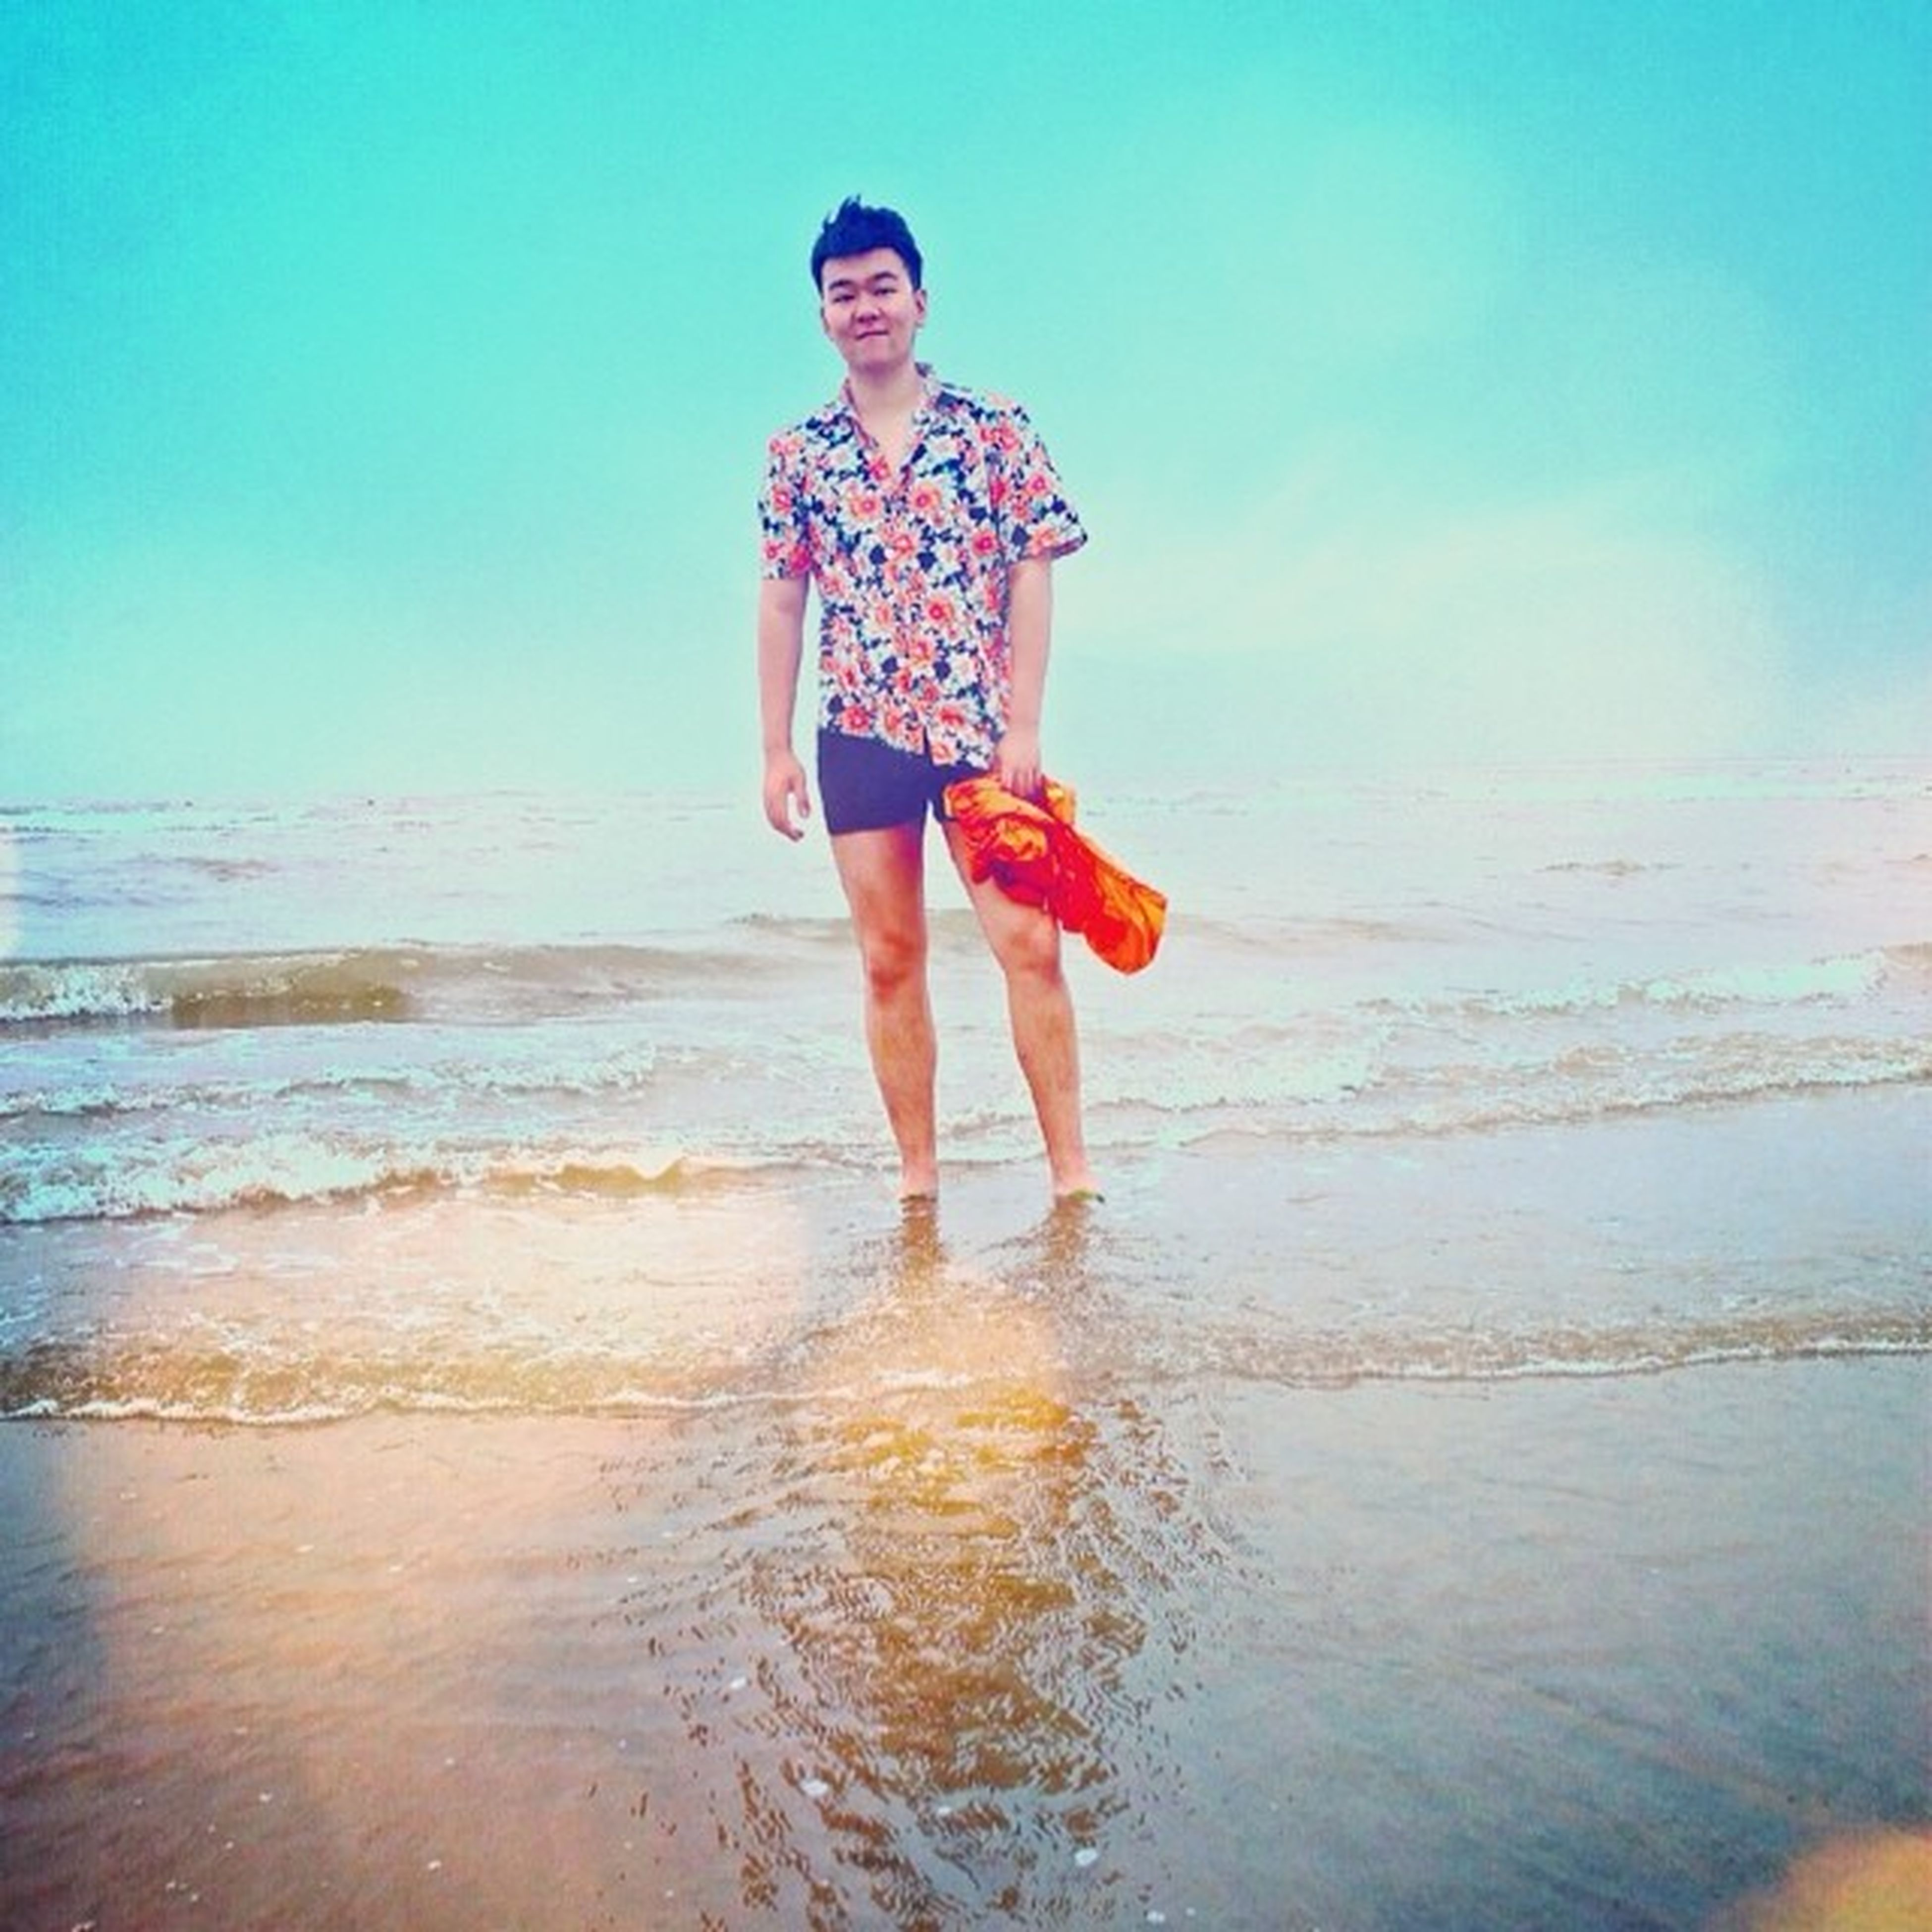 beach, water, sea, full length, lifestyles, person, sand, leisure activity, shore, vacations, young adult, casual clothing, childhood, front view, horizon over water, standing, looking at camera, portrait